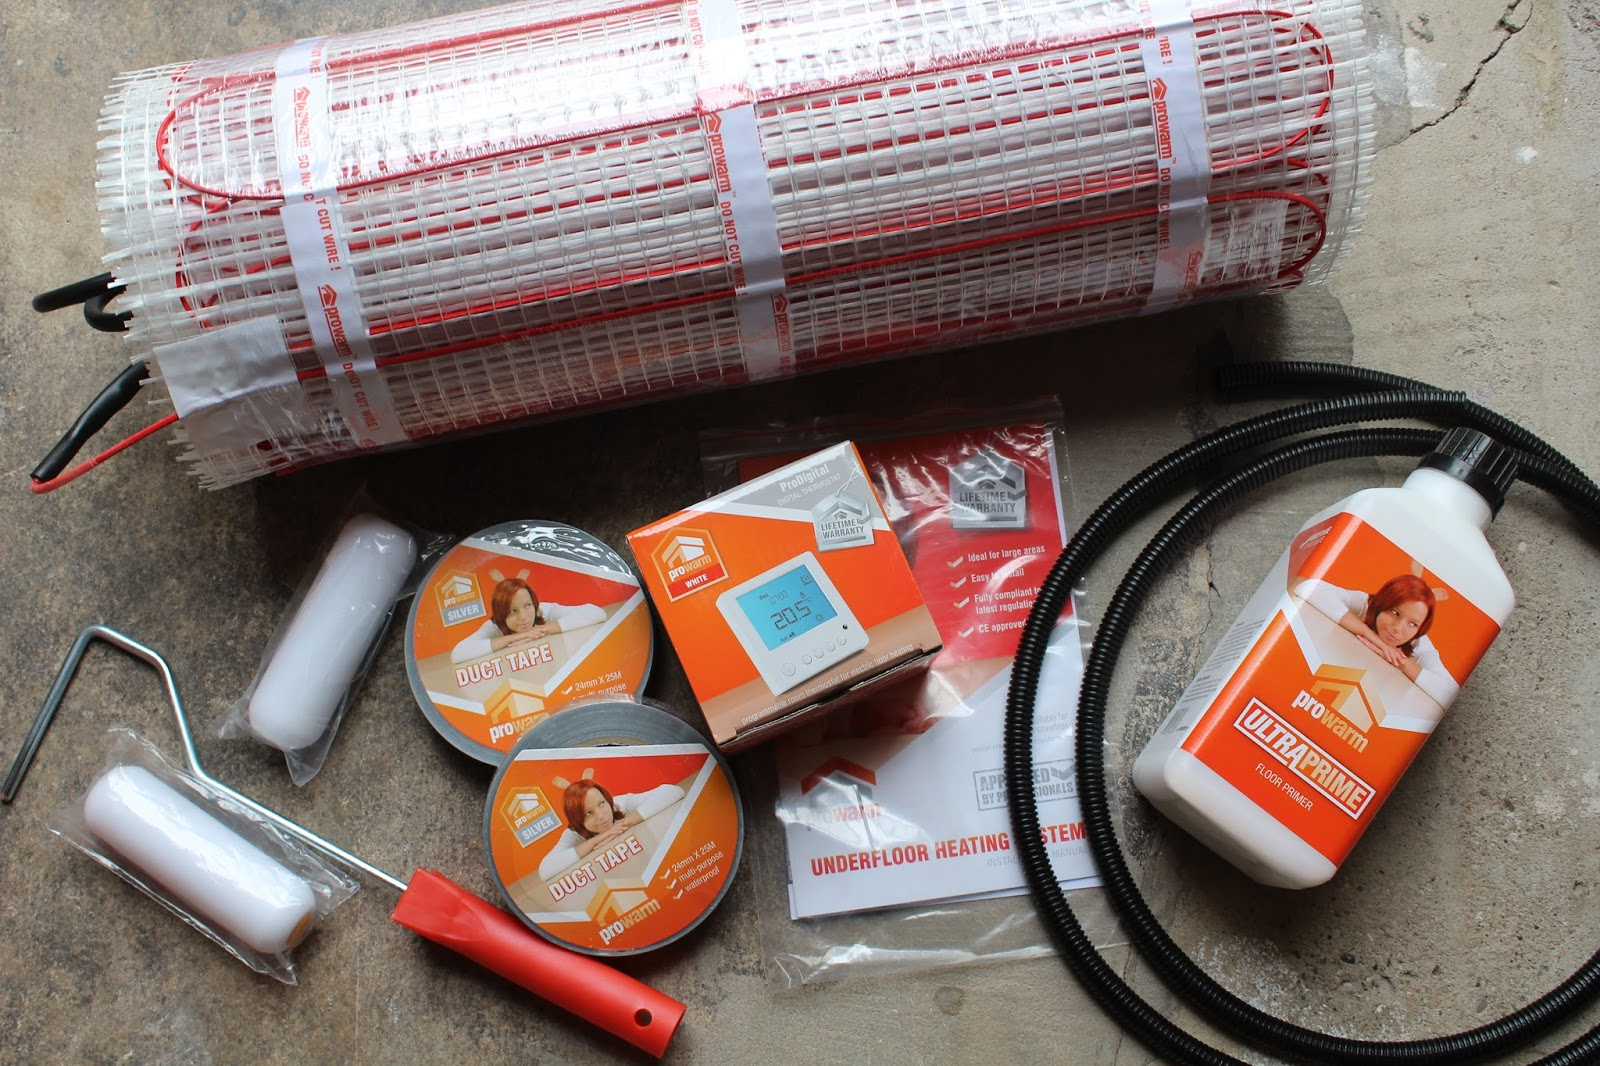 Pro Warm underfloor heating kit